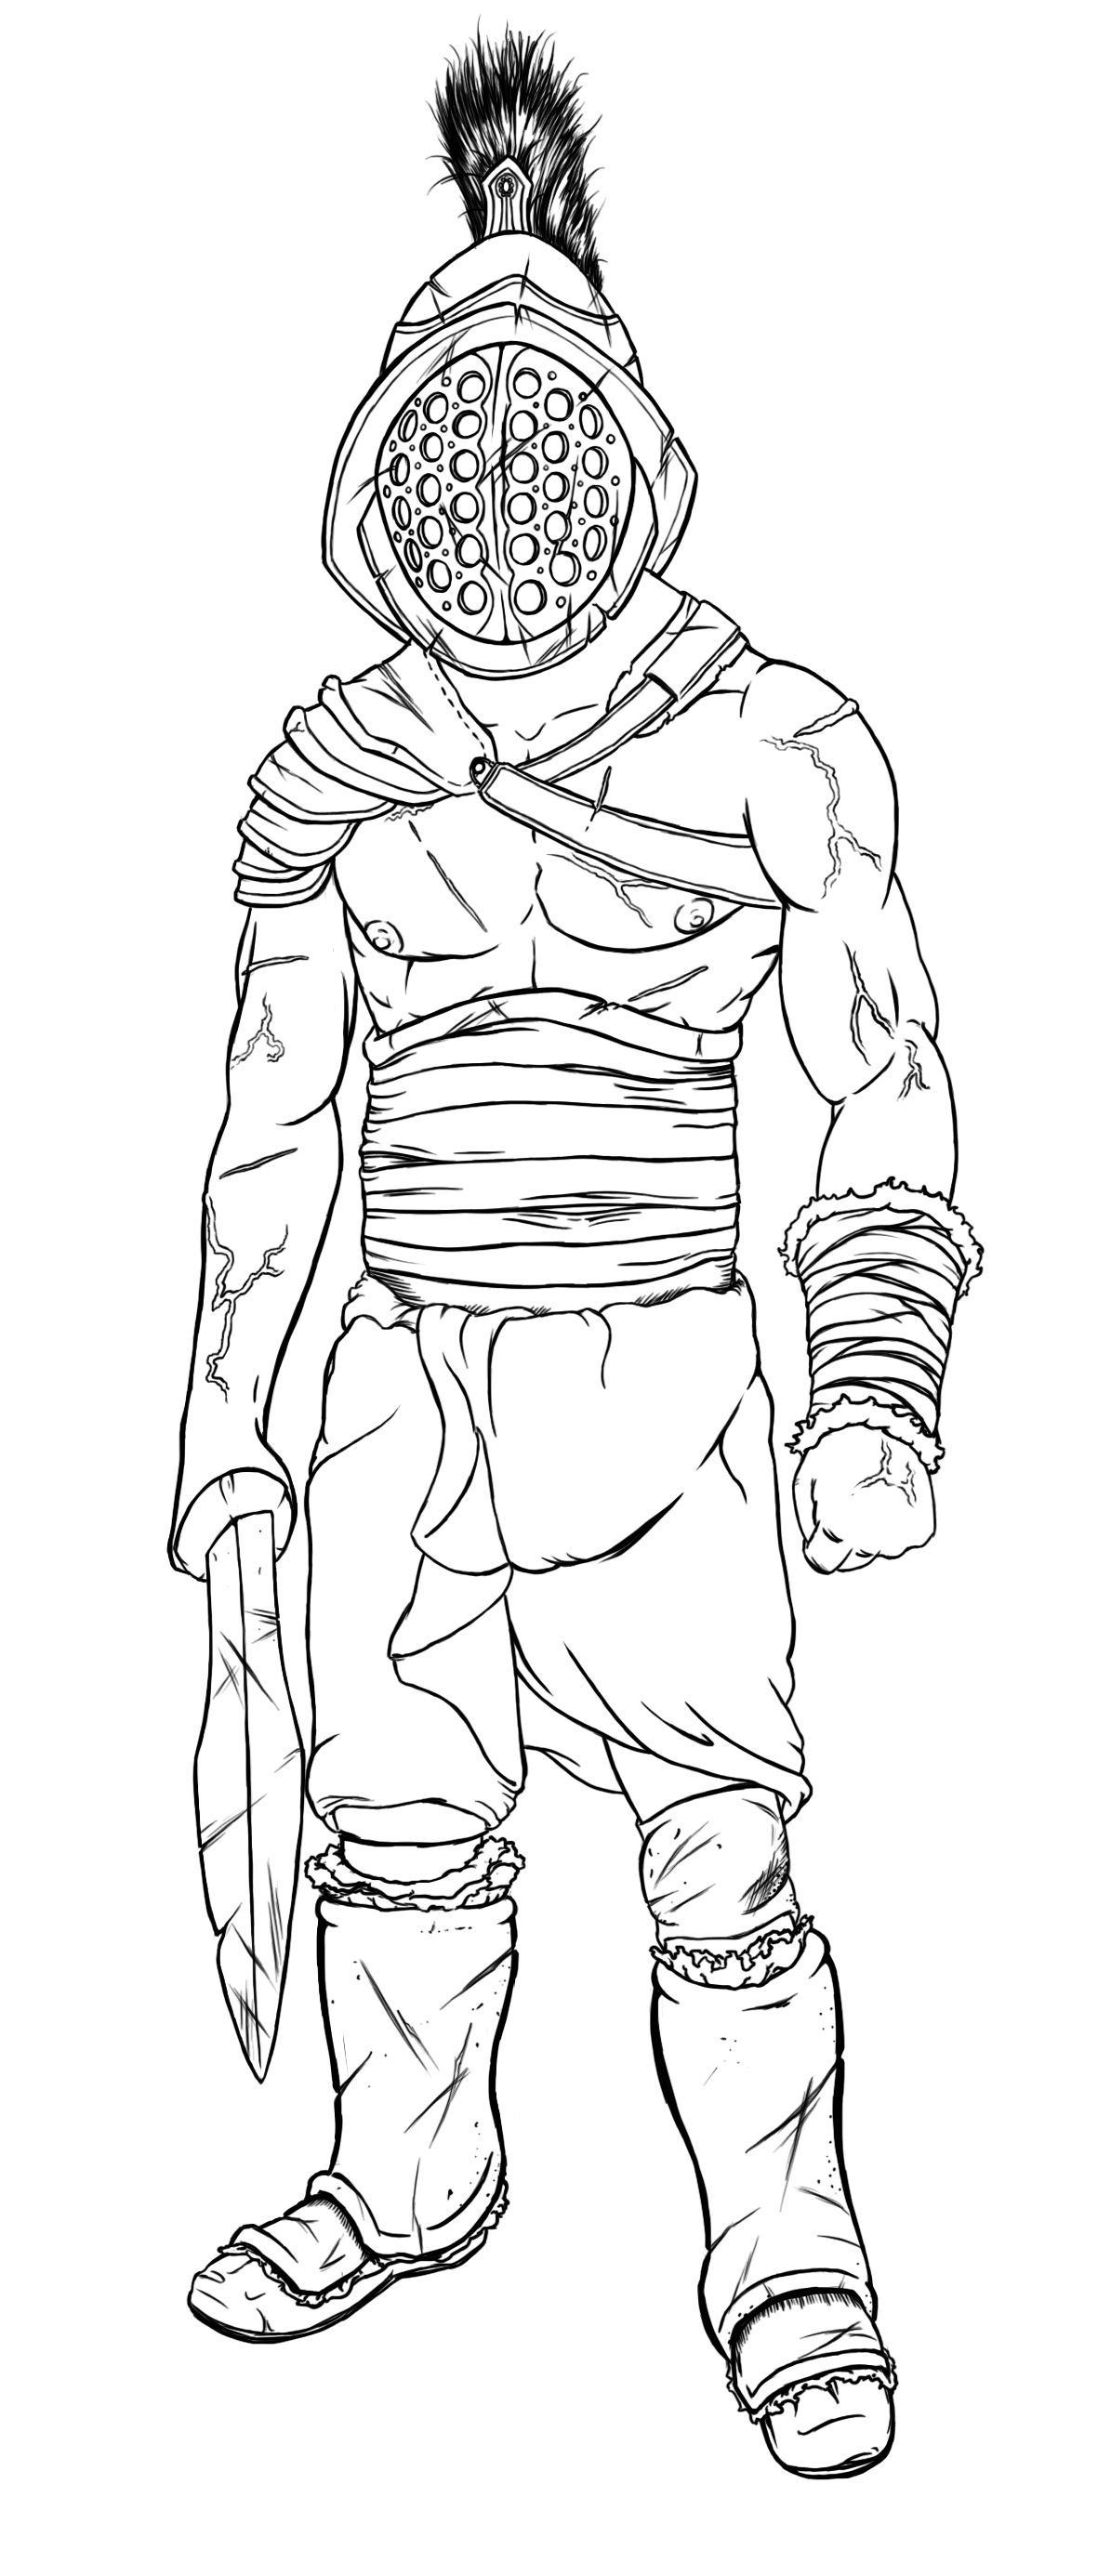 how to draw a roman gladiator gladiator lines by tex tin star on deviantart how draw to roman gladiator a